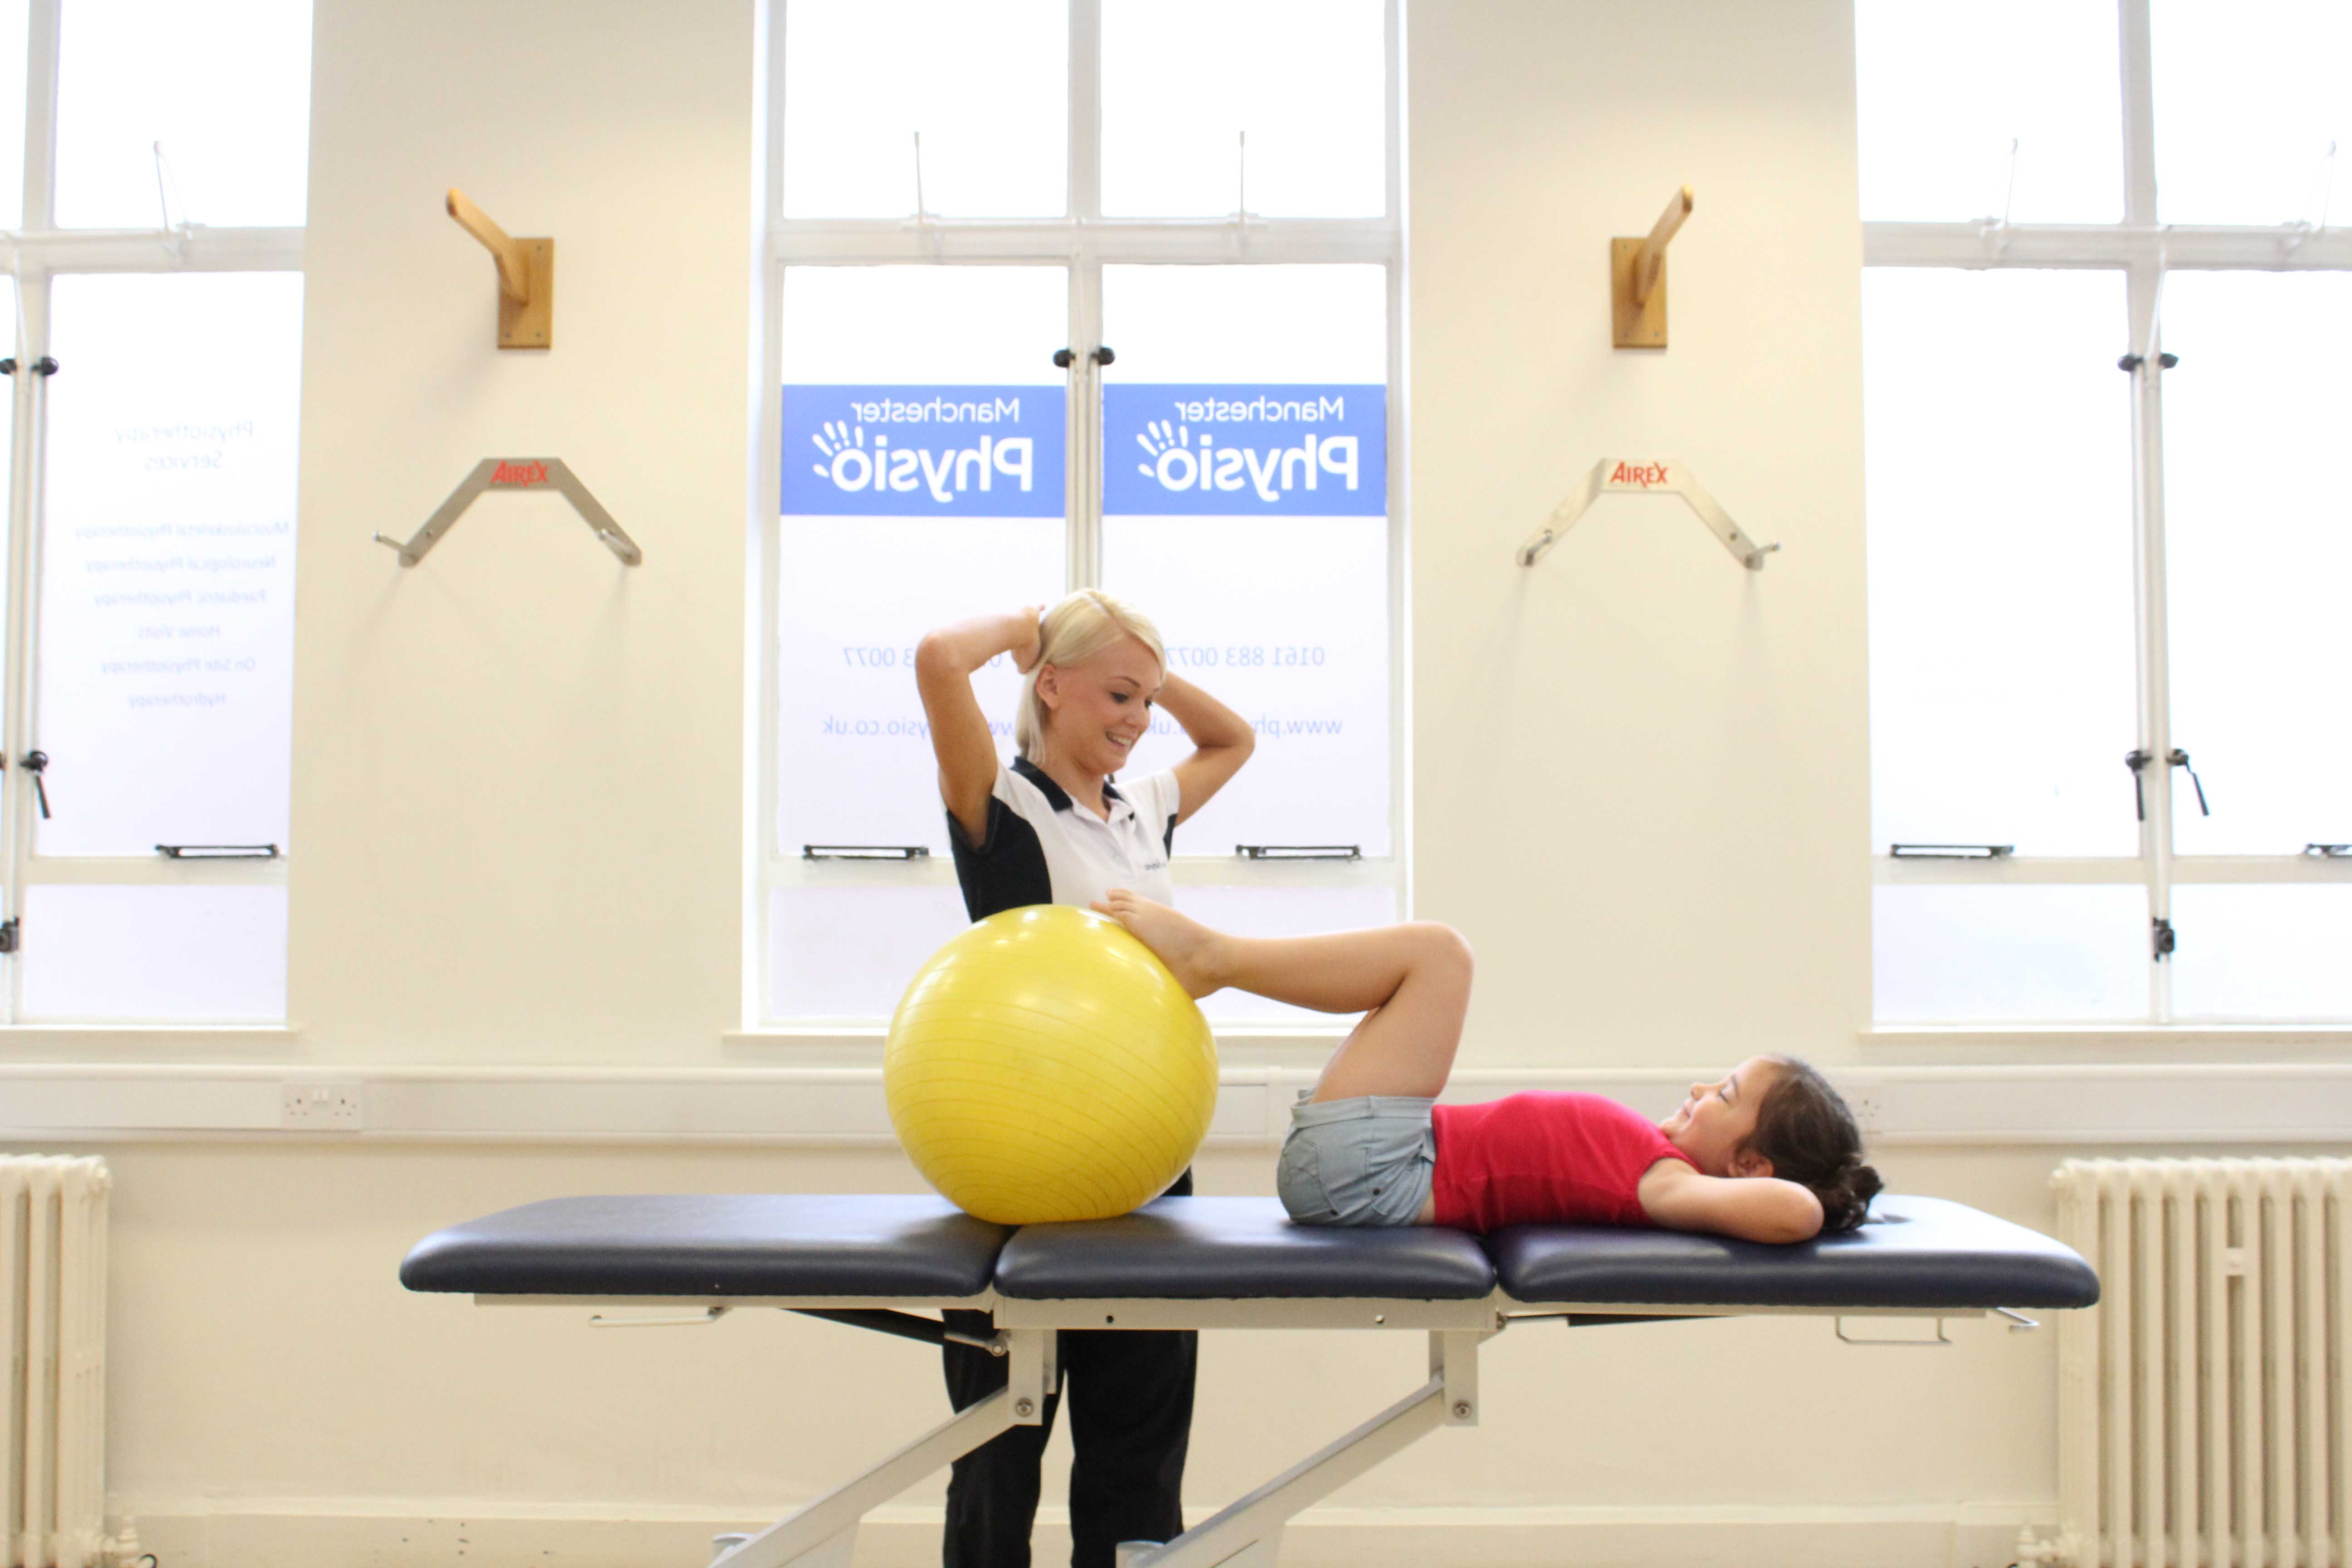 Specialist physiotherapist supervising lower limb stretching exercises using a gym ball